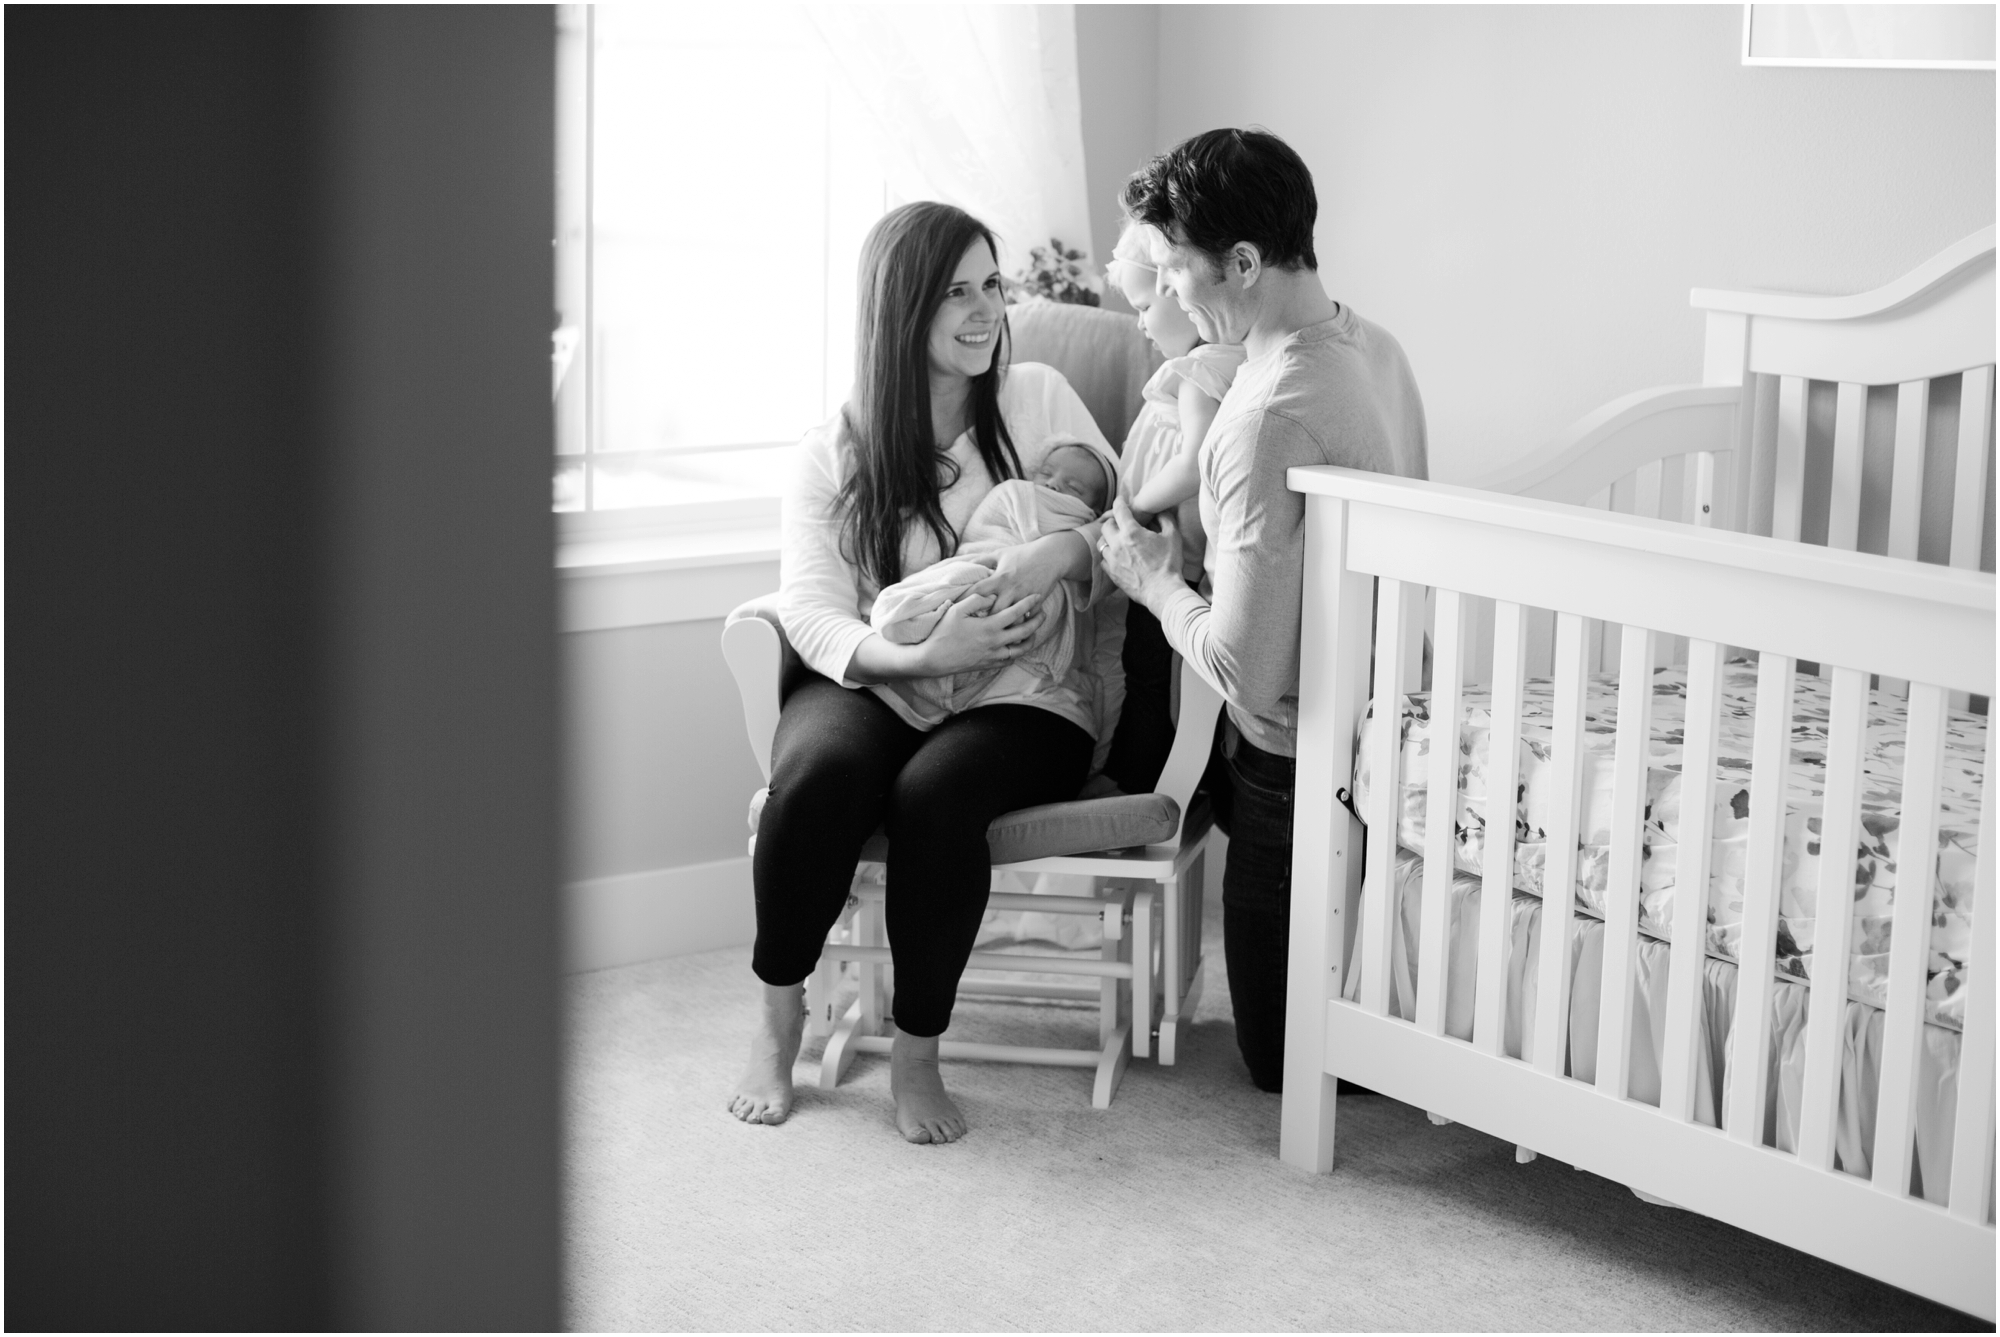 Lifestyle newborn photos by Briana Calderon Photography based in the Greater Seattle & Tacoma, WA_1074.jpg